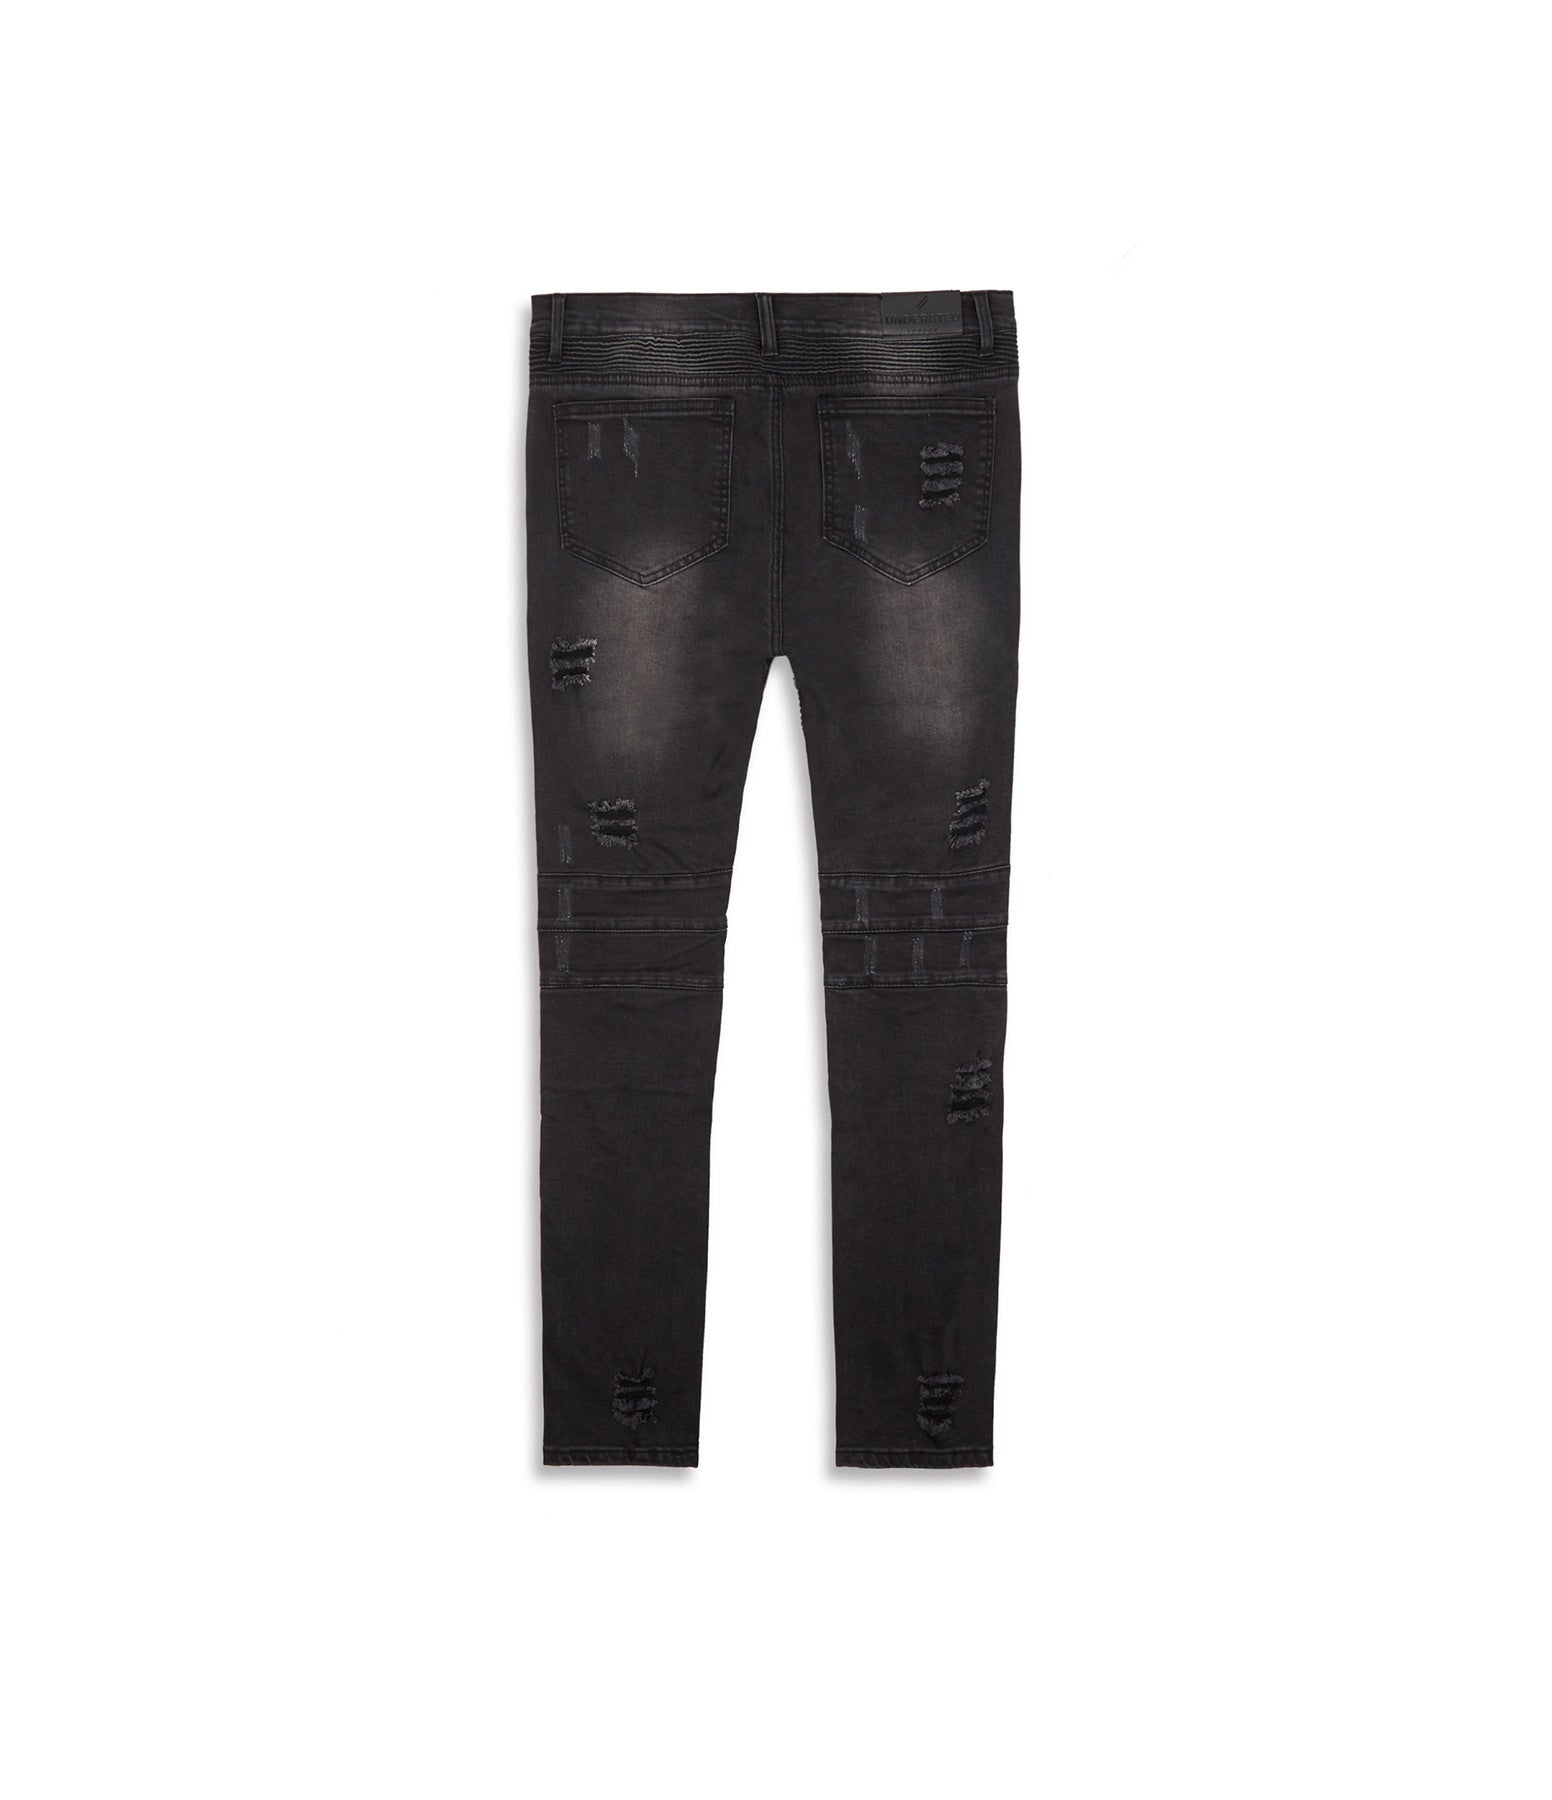 JN152 Distressed Stone Wash Biker Denim - Black - underated london - underatedco - 12